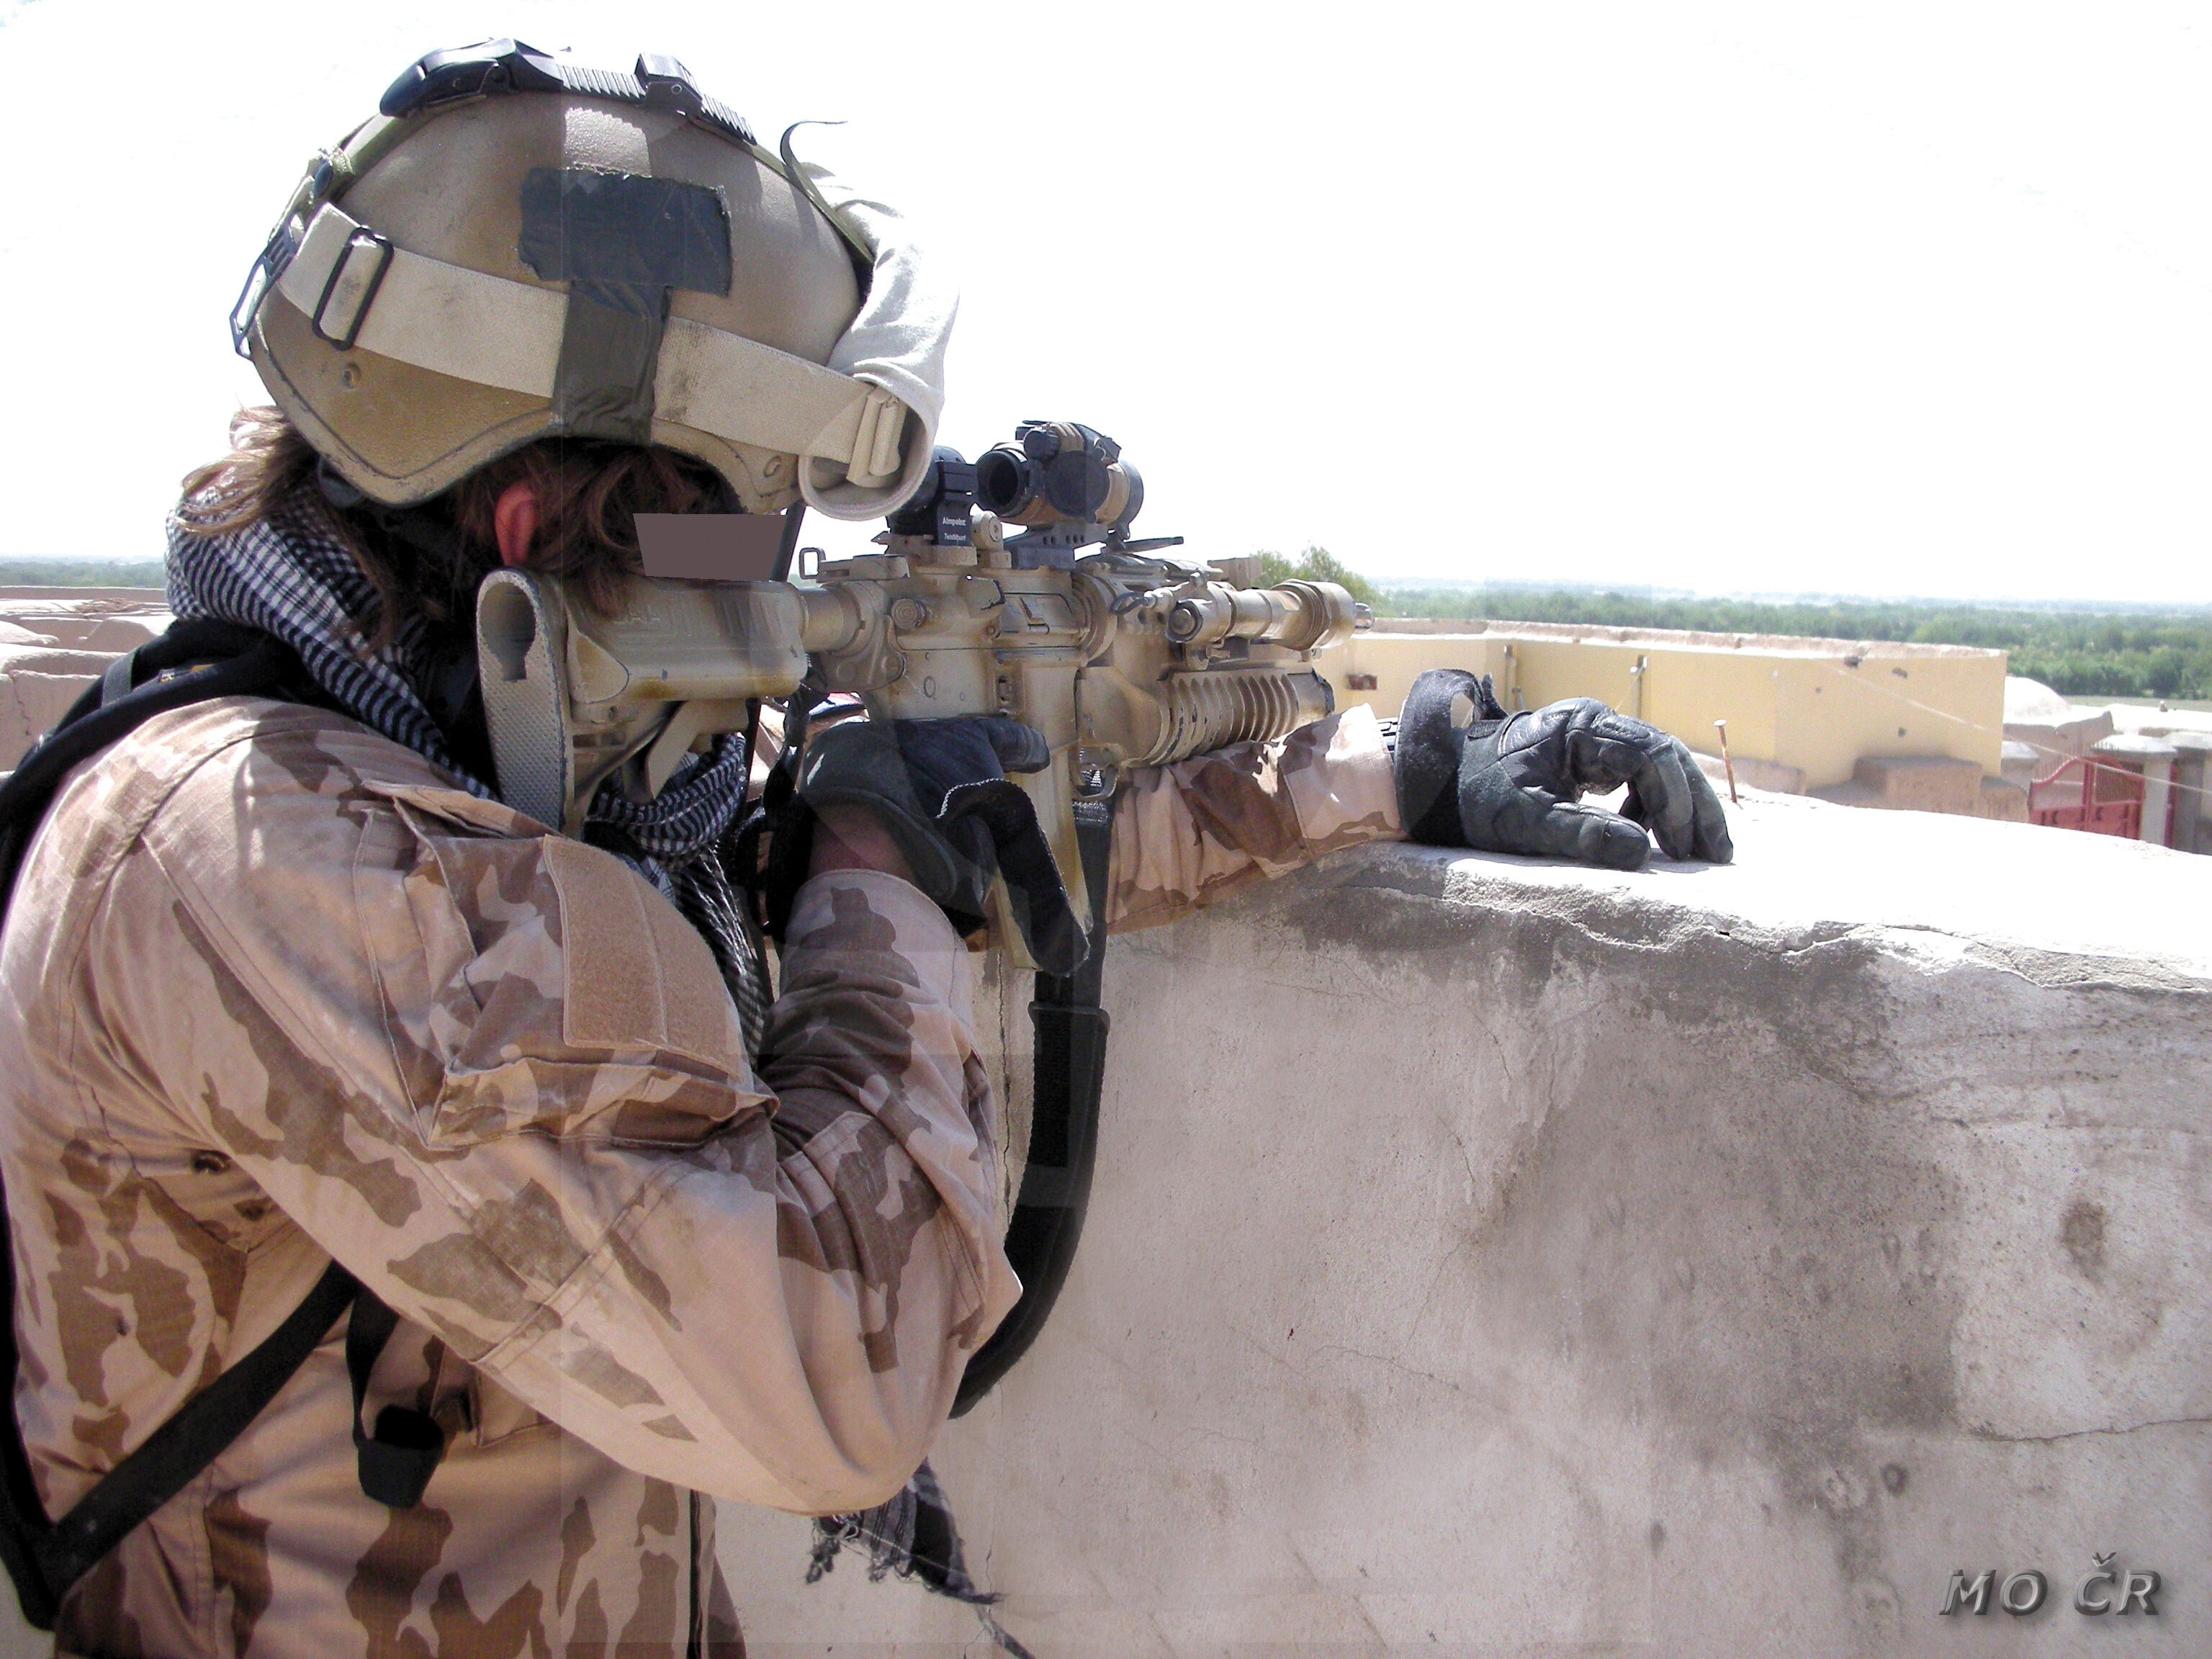 Czech Army units during the ISAF operation in Afghanistan